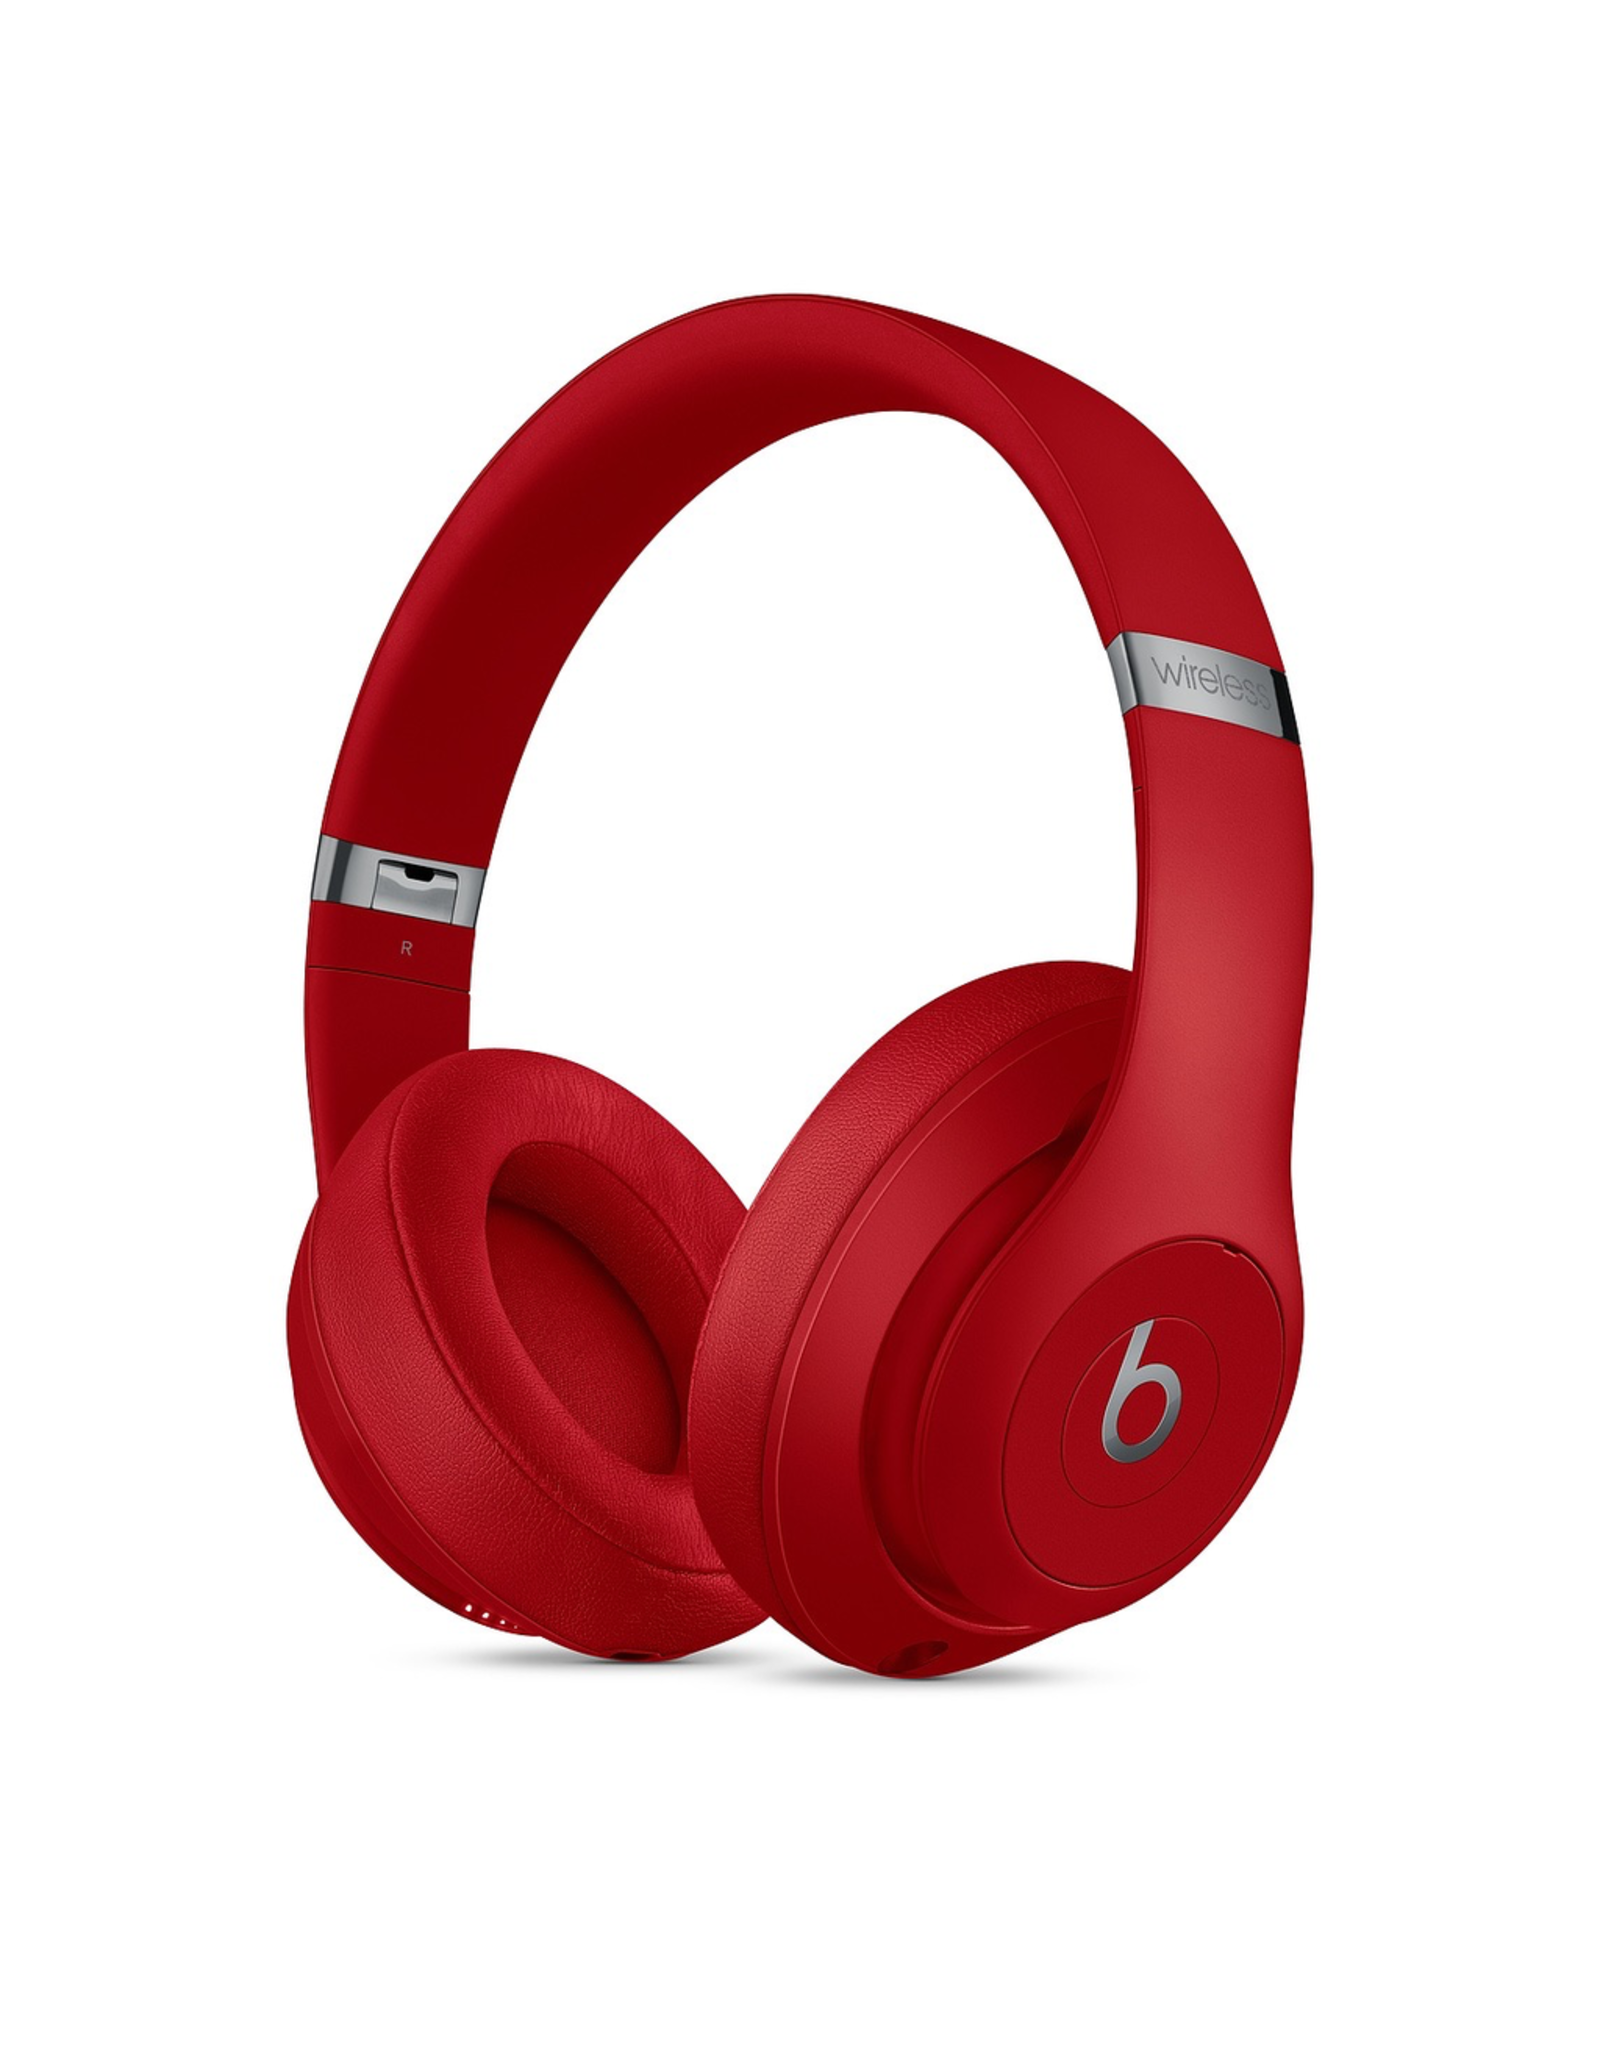 Beats Beats Studio3 Wireless Over-Ear Headphones - Red